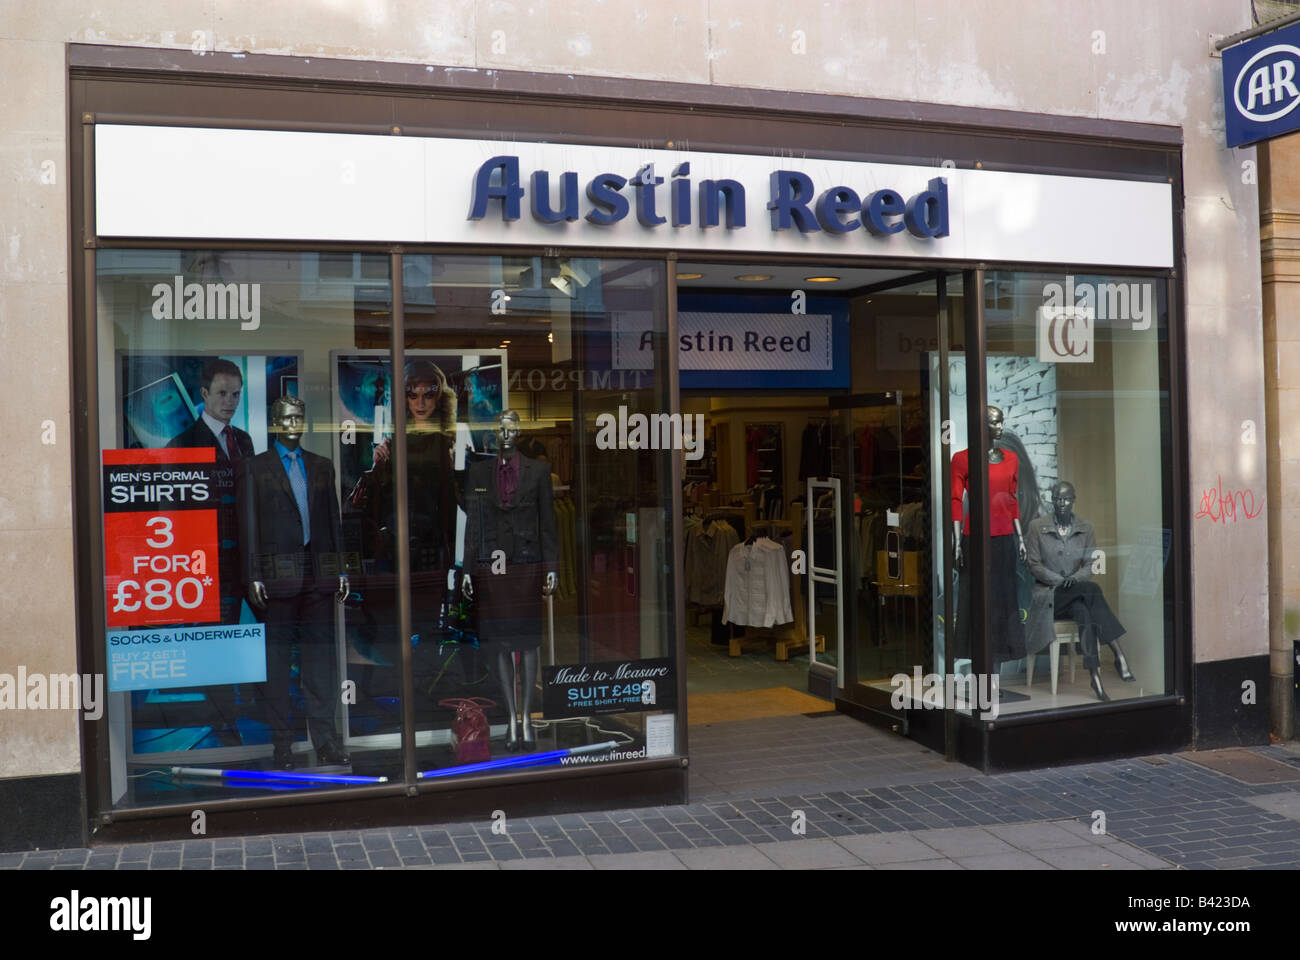 Austin Reed Clothing Shop In Norwich Norfolk Uk Stock Photo Alamy